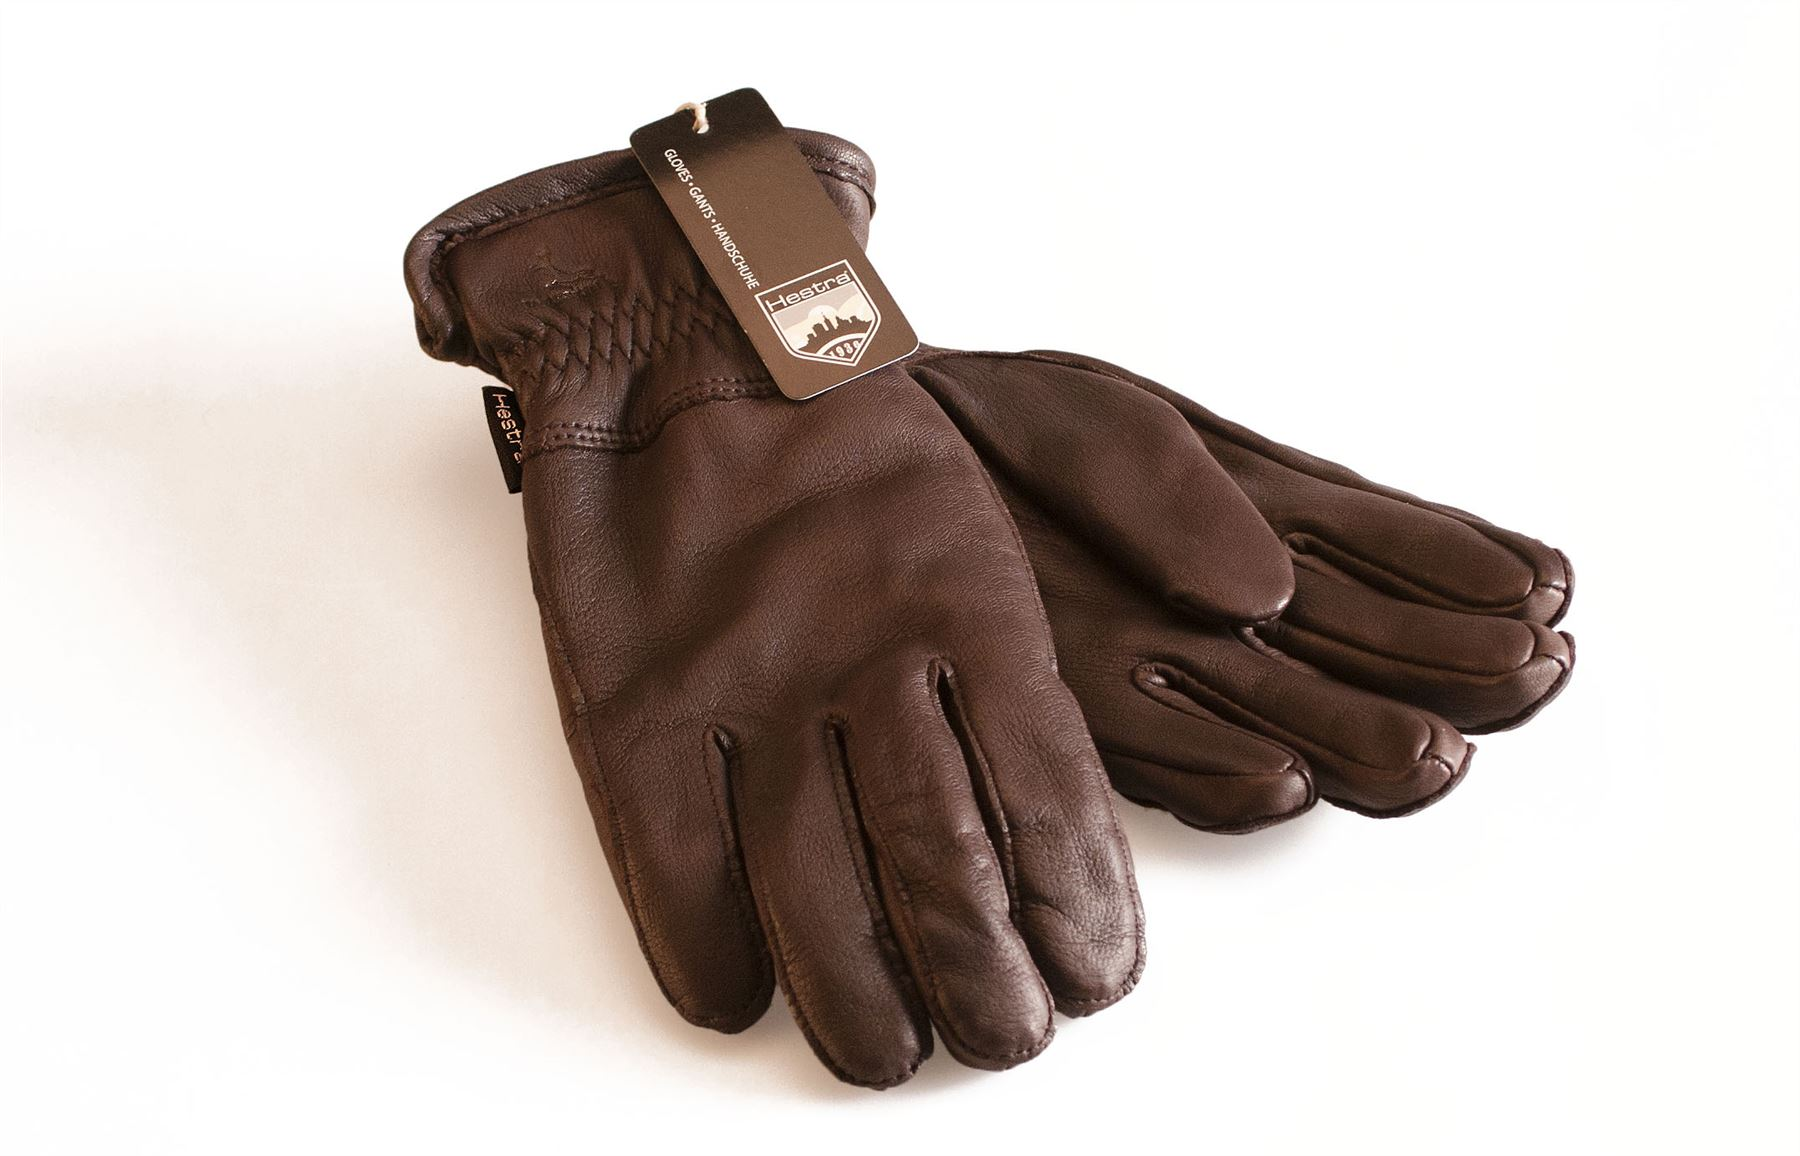 Womens Leather Driving Gloves Fleece Lined - Hestra premium womens deer skin leather gloves fleece